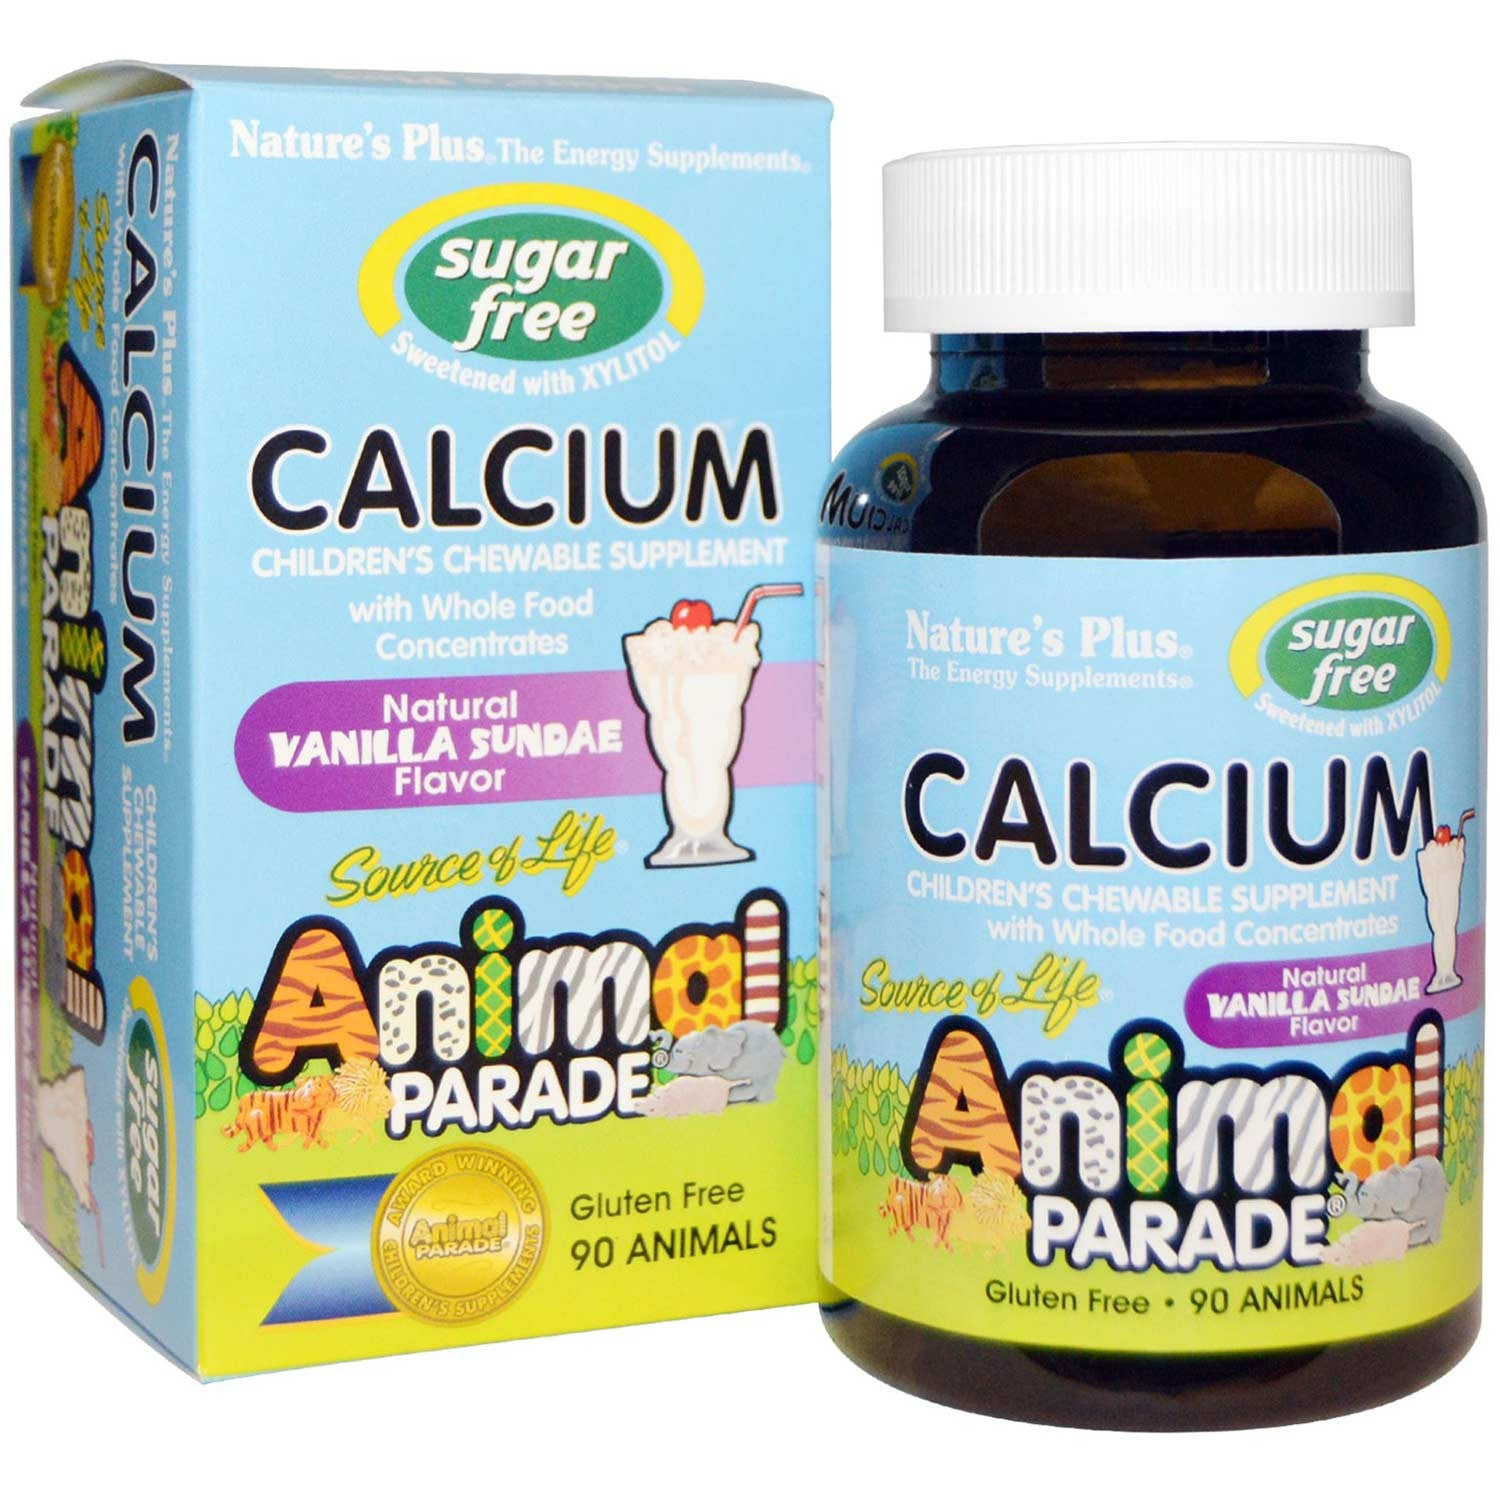 Natures Plus Source of Life Animal Parade Calcium - Vanilla Sundae (Sugar-Free), 90 tabs.